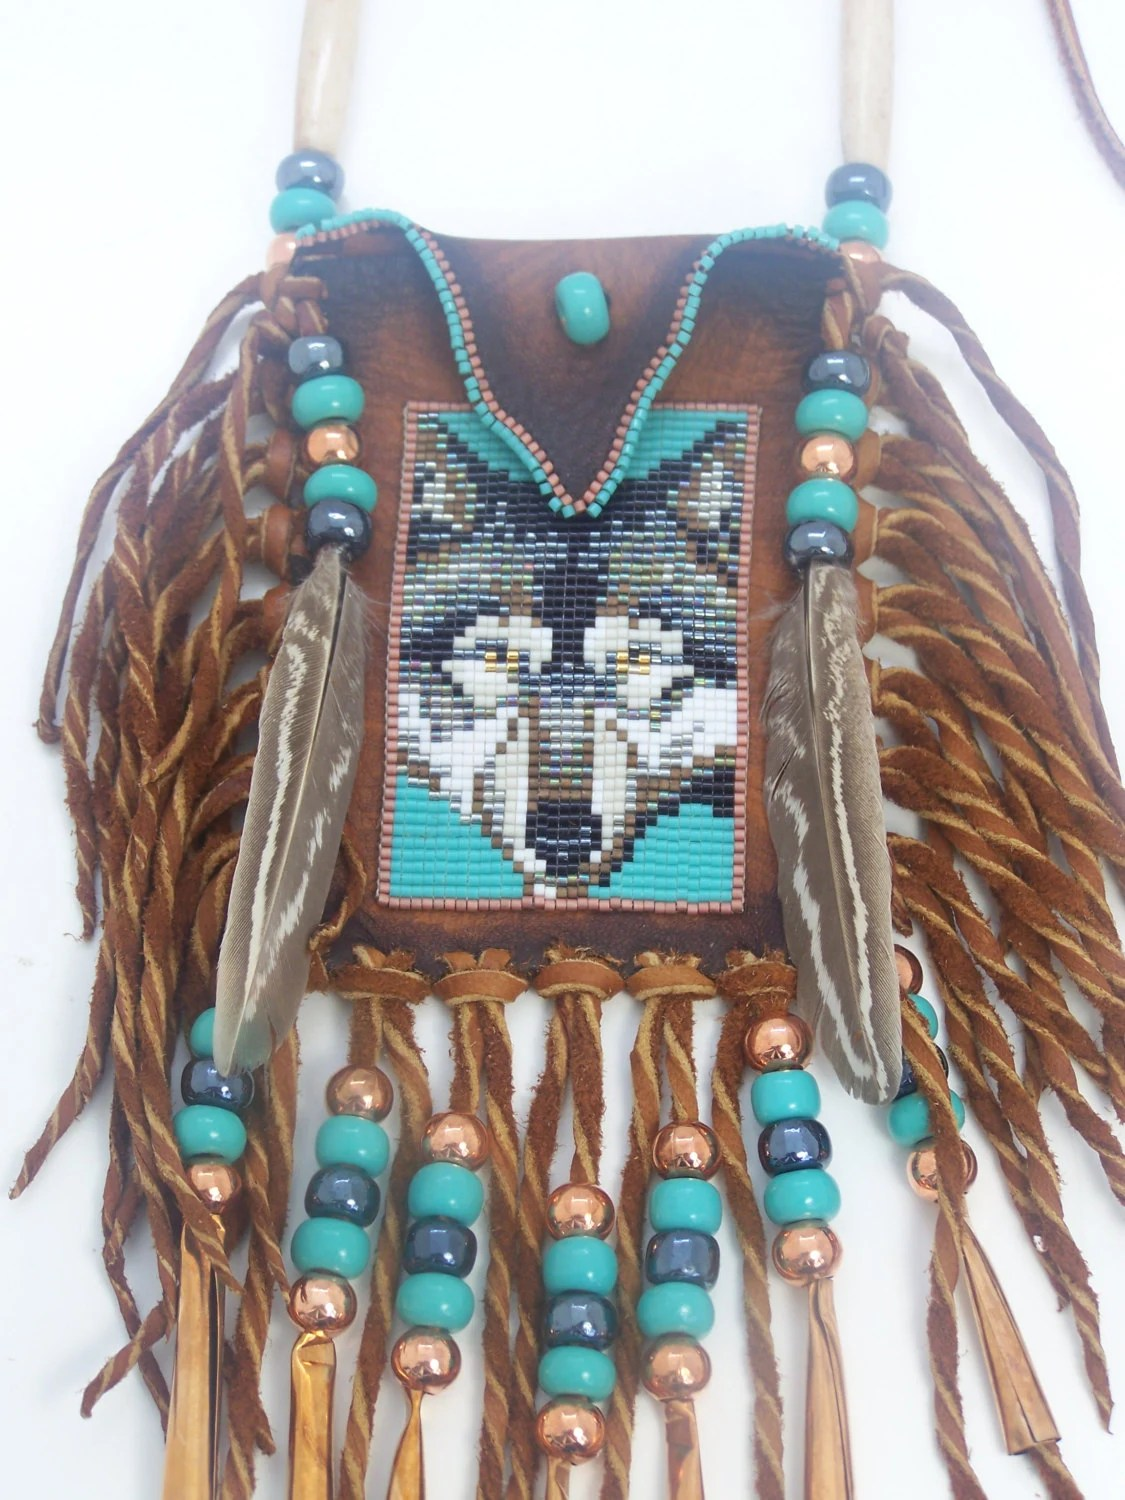 Native American Gray Wolf Portrait With Turquoise Background